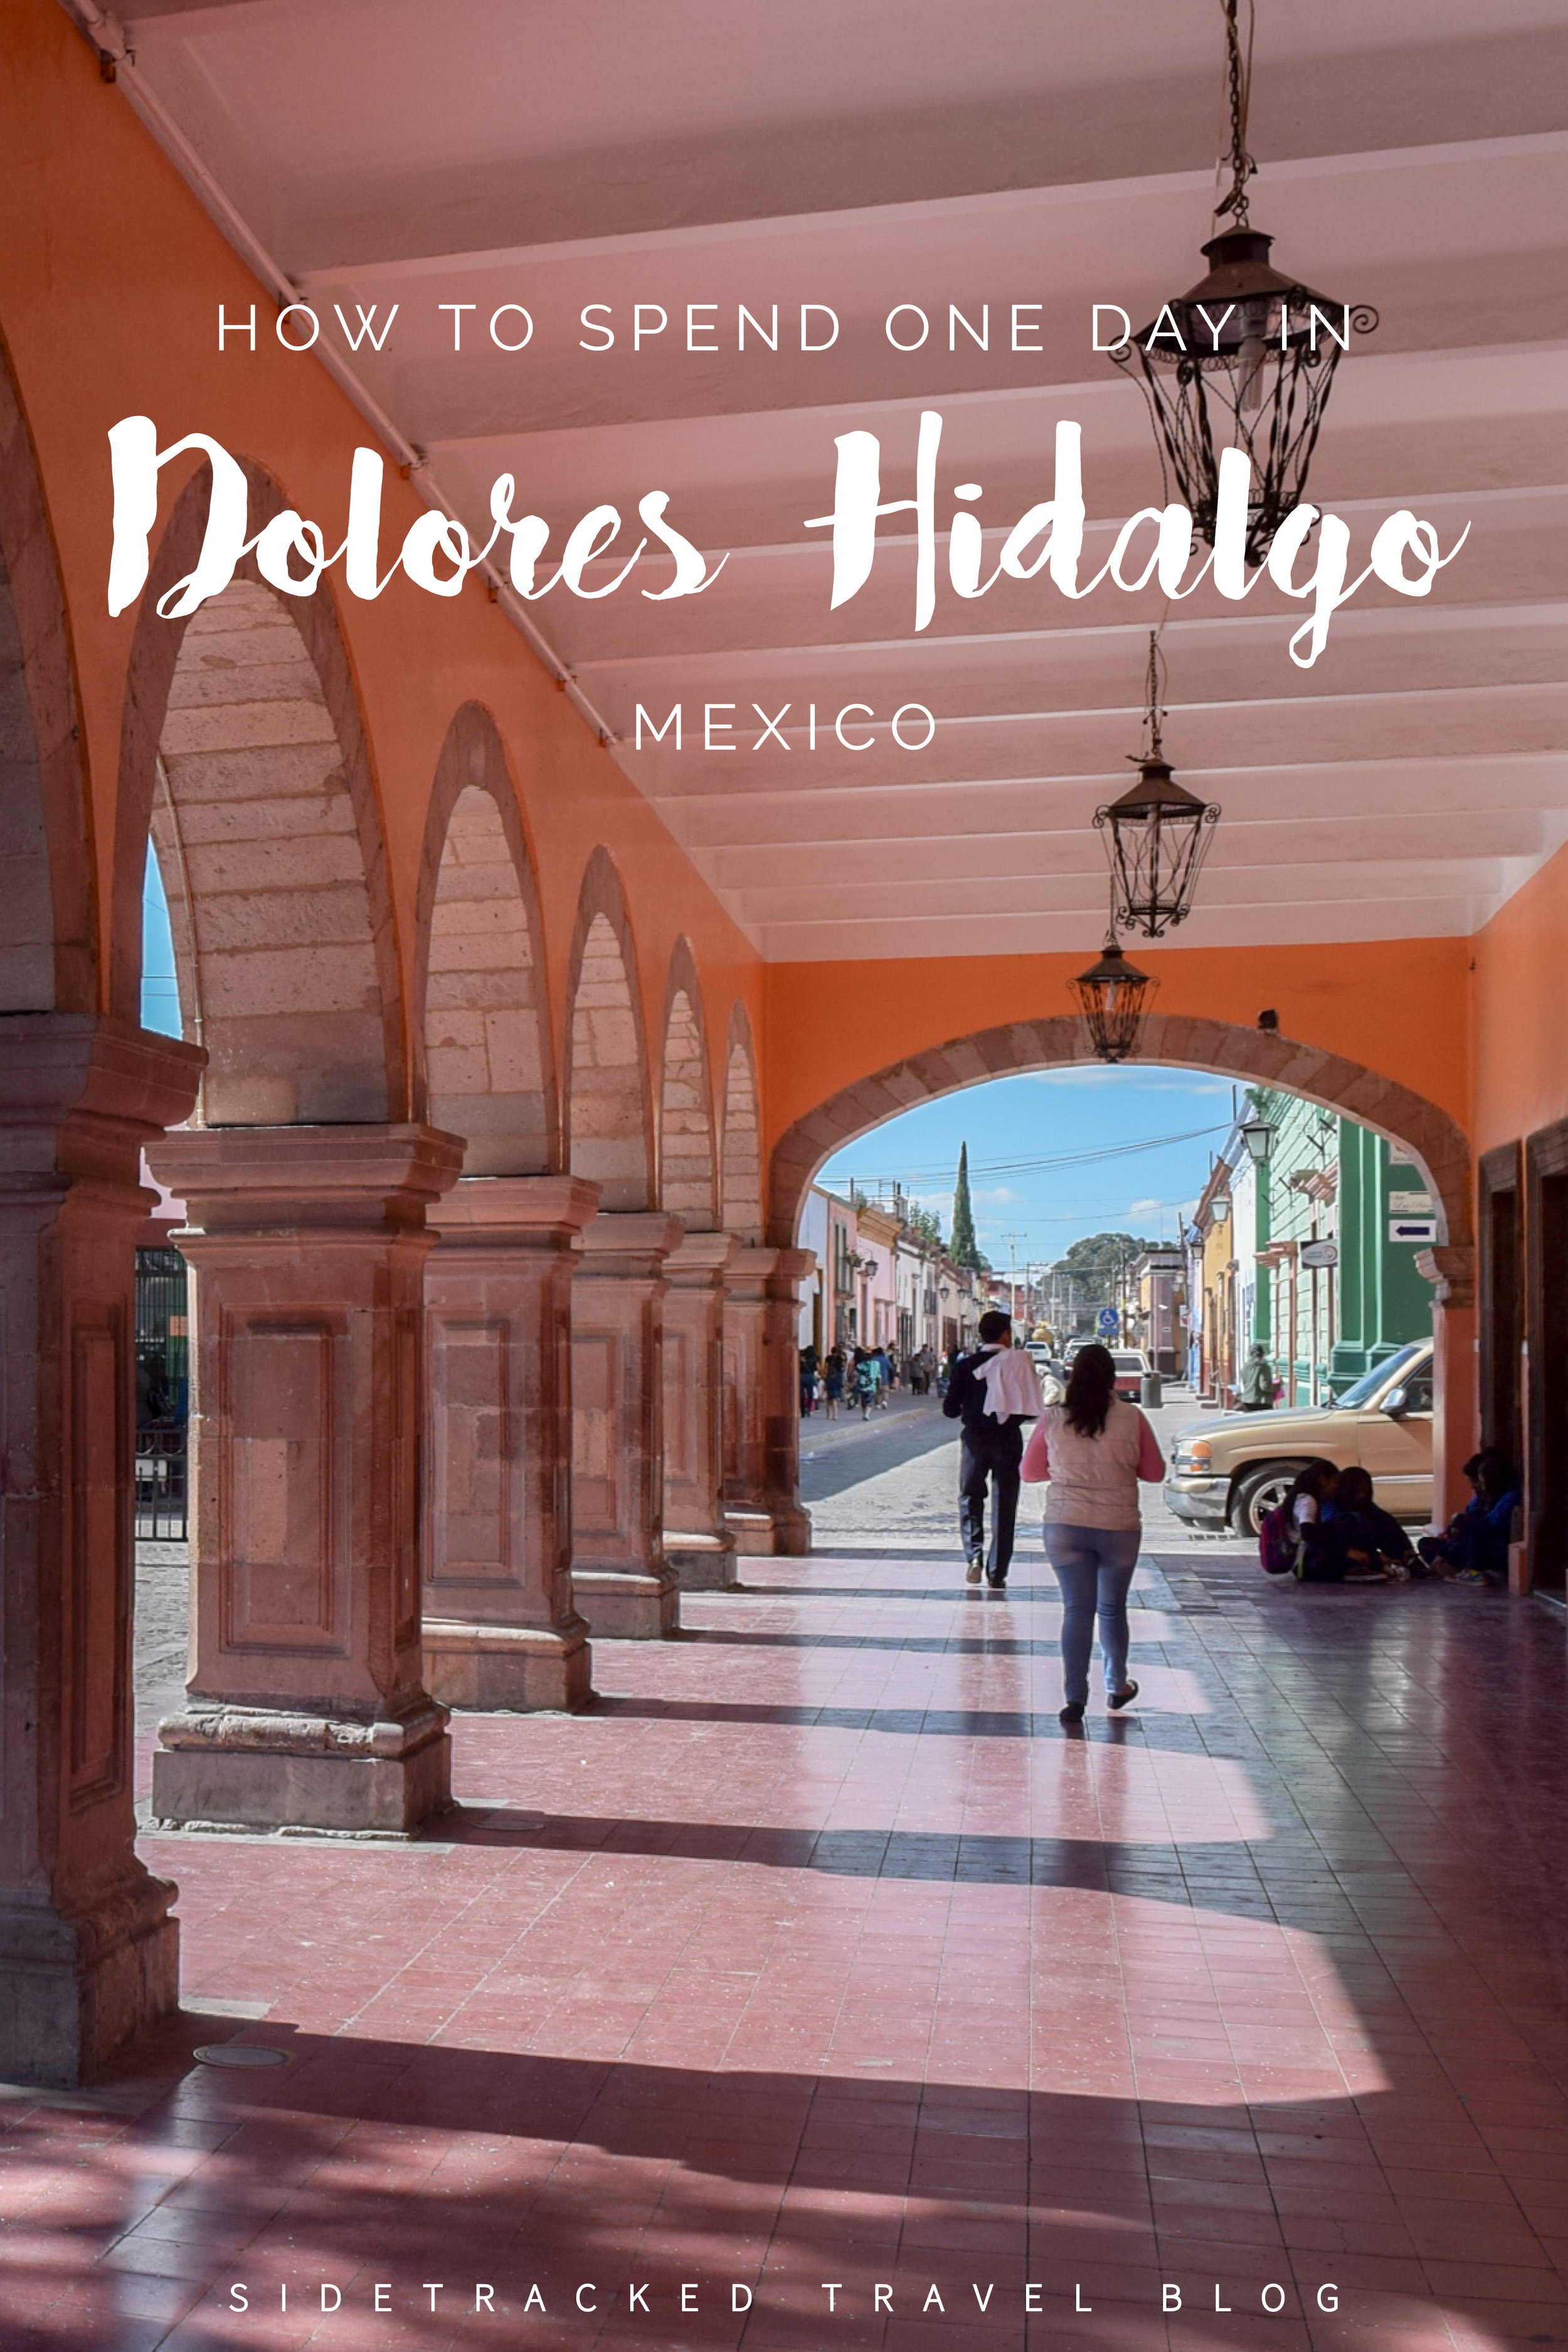 Planning a trip to the historic town of Dolores Hidalgo? Then have a read through these important things to see and do during your visit - and get excited for an unforgettable day in Dolores Hidalgo!